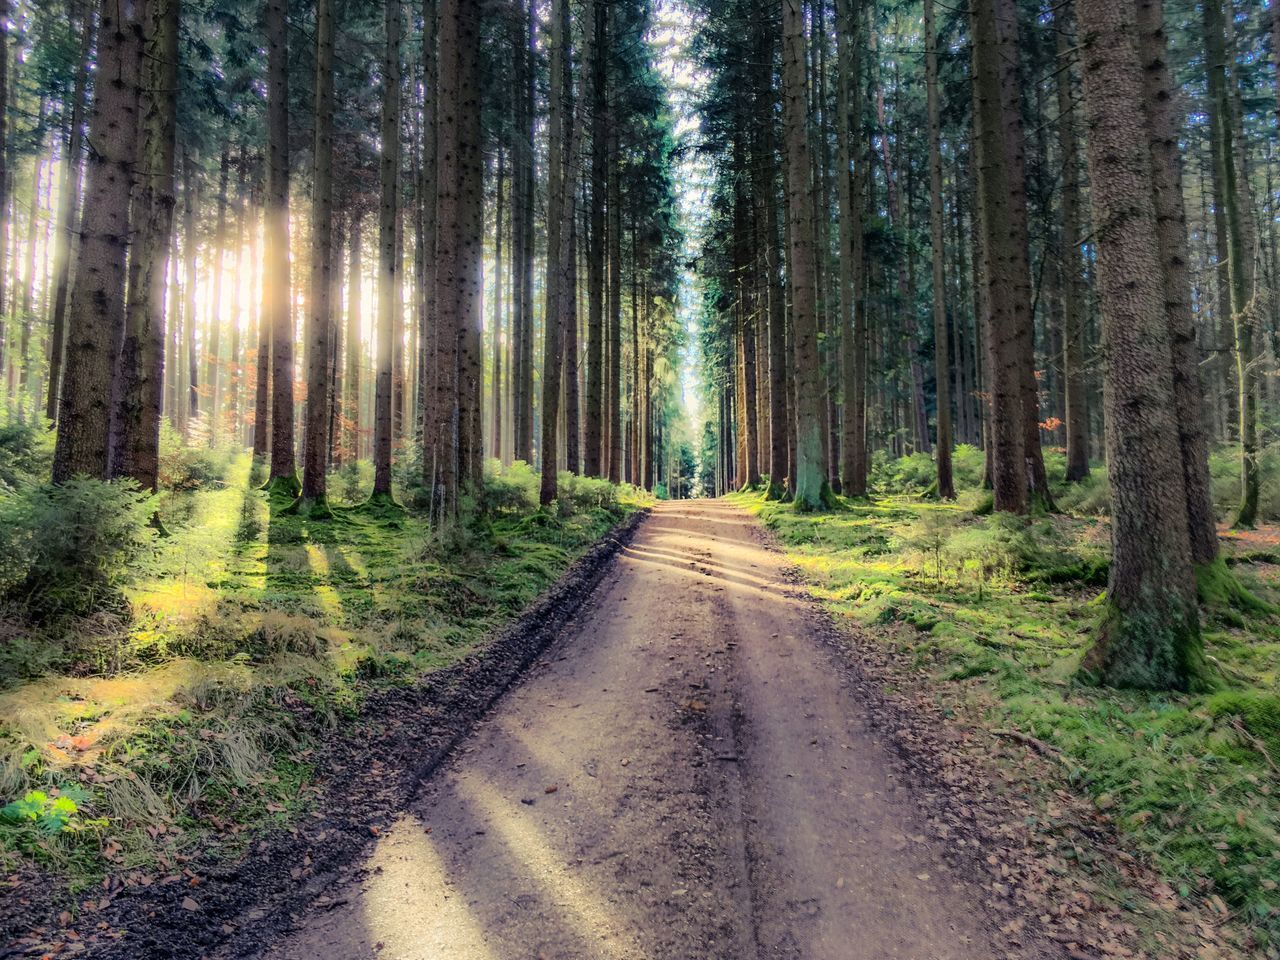 forest, tree, nature, the way forward, tree trunk, straight, outdoors, no people, day, scenics, road, beauty in nature, landscape, grass, sky